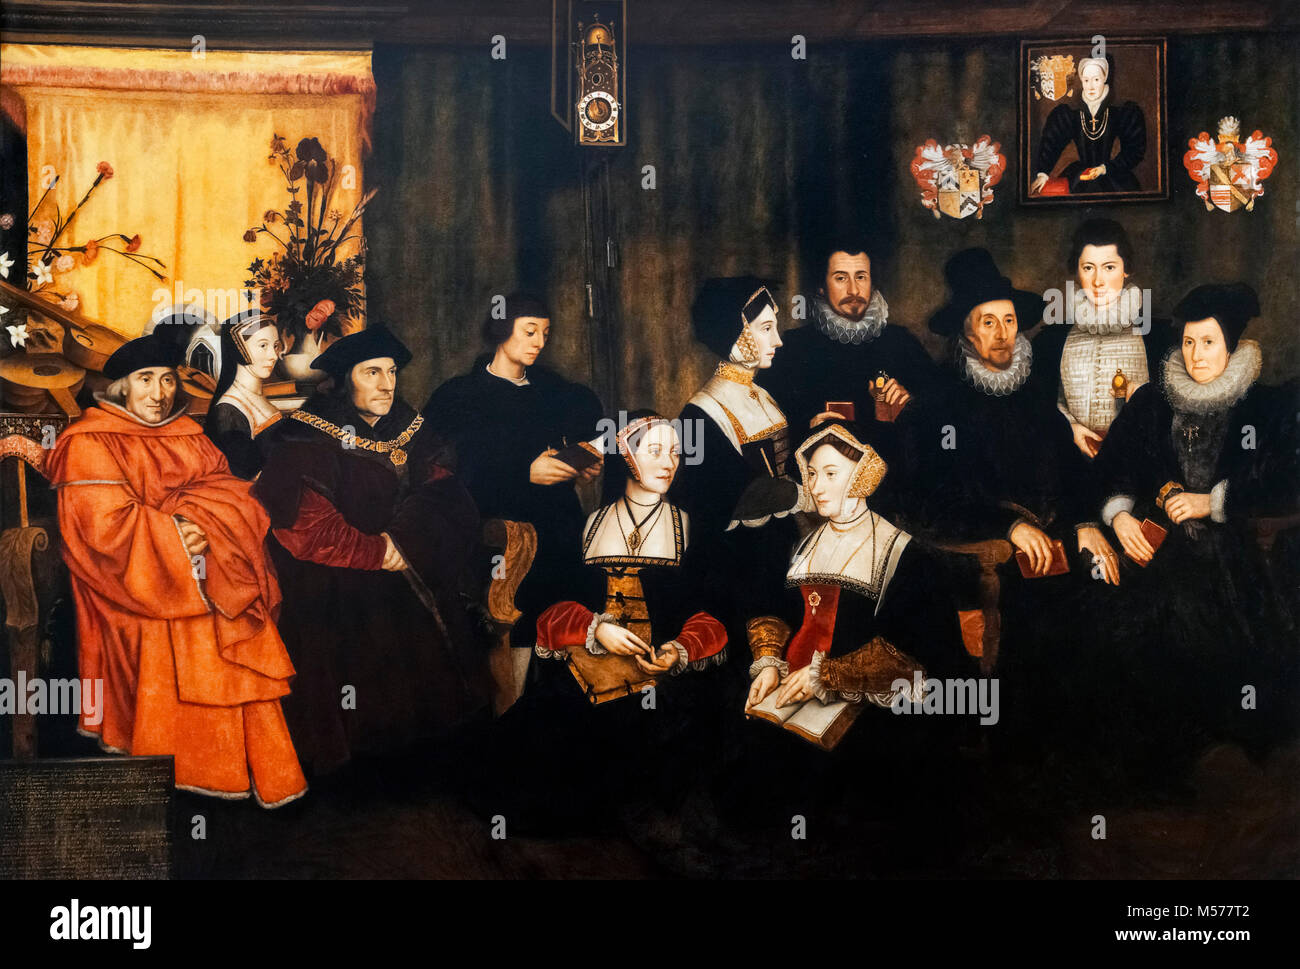 Sir Thomas More and his Family by Rowland Lockey, 1593 - Stock Image